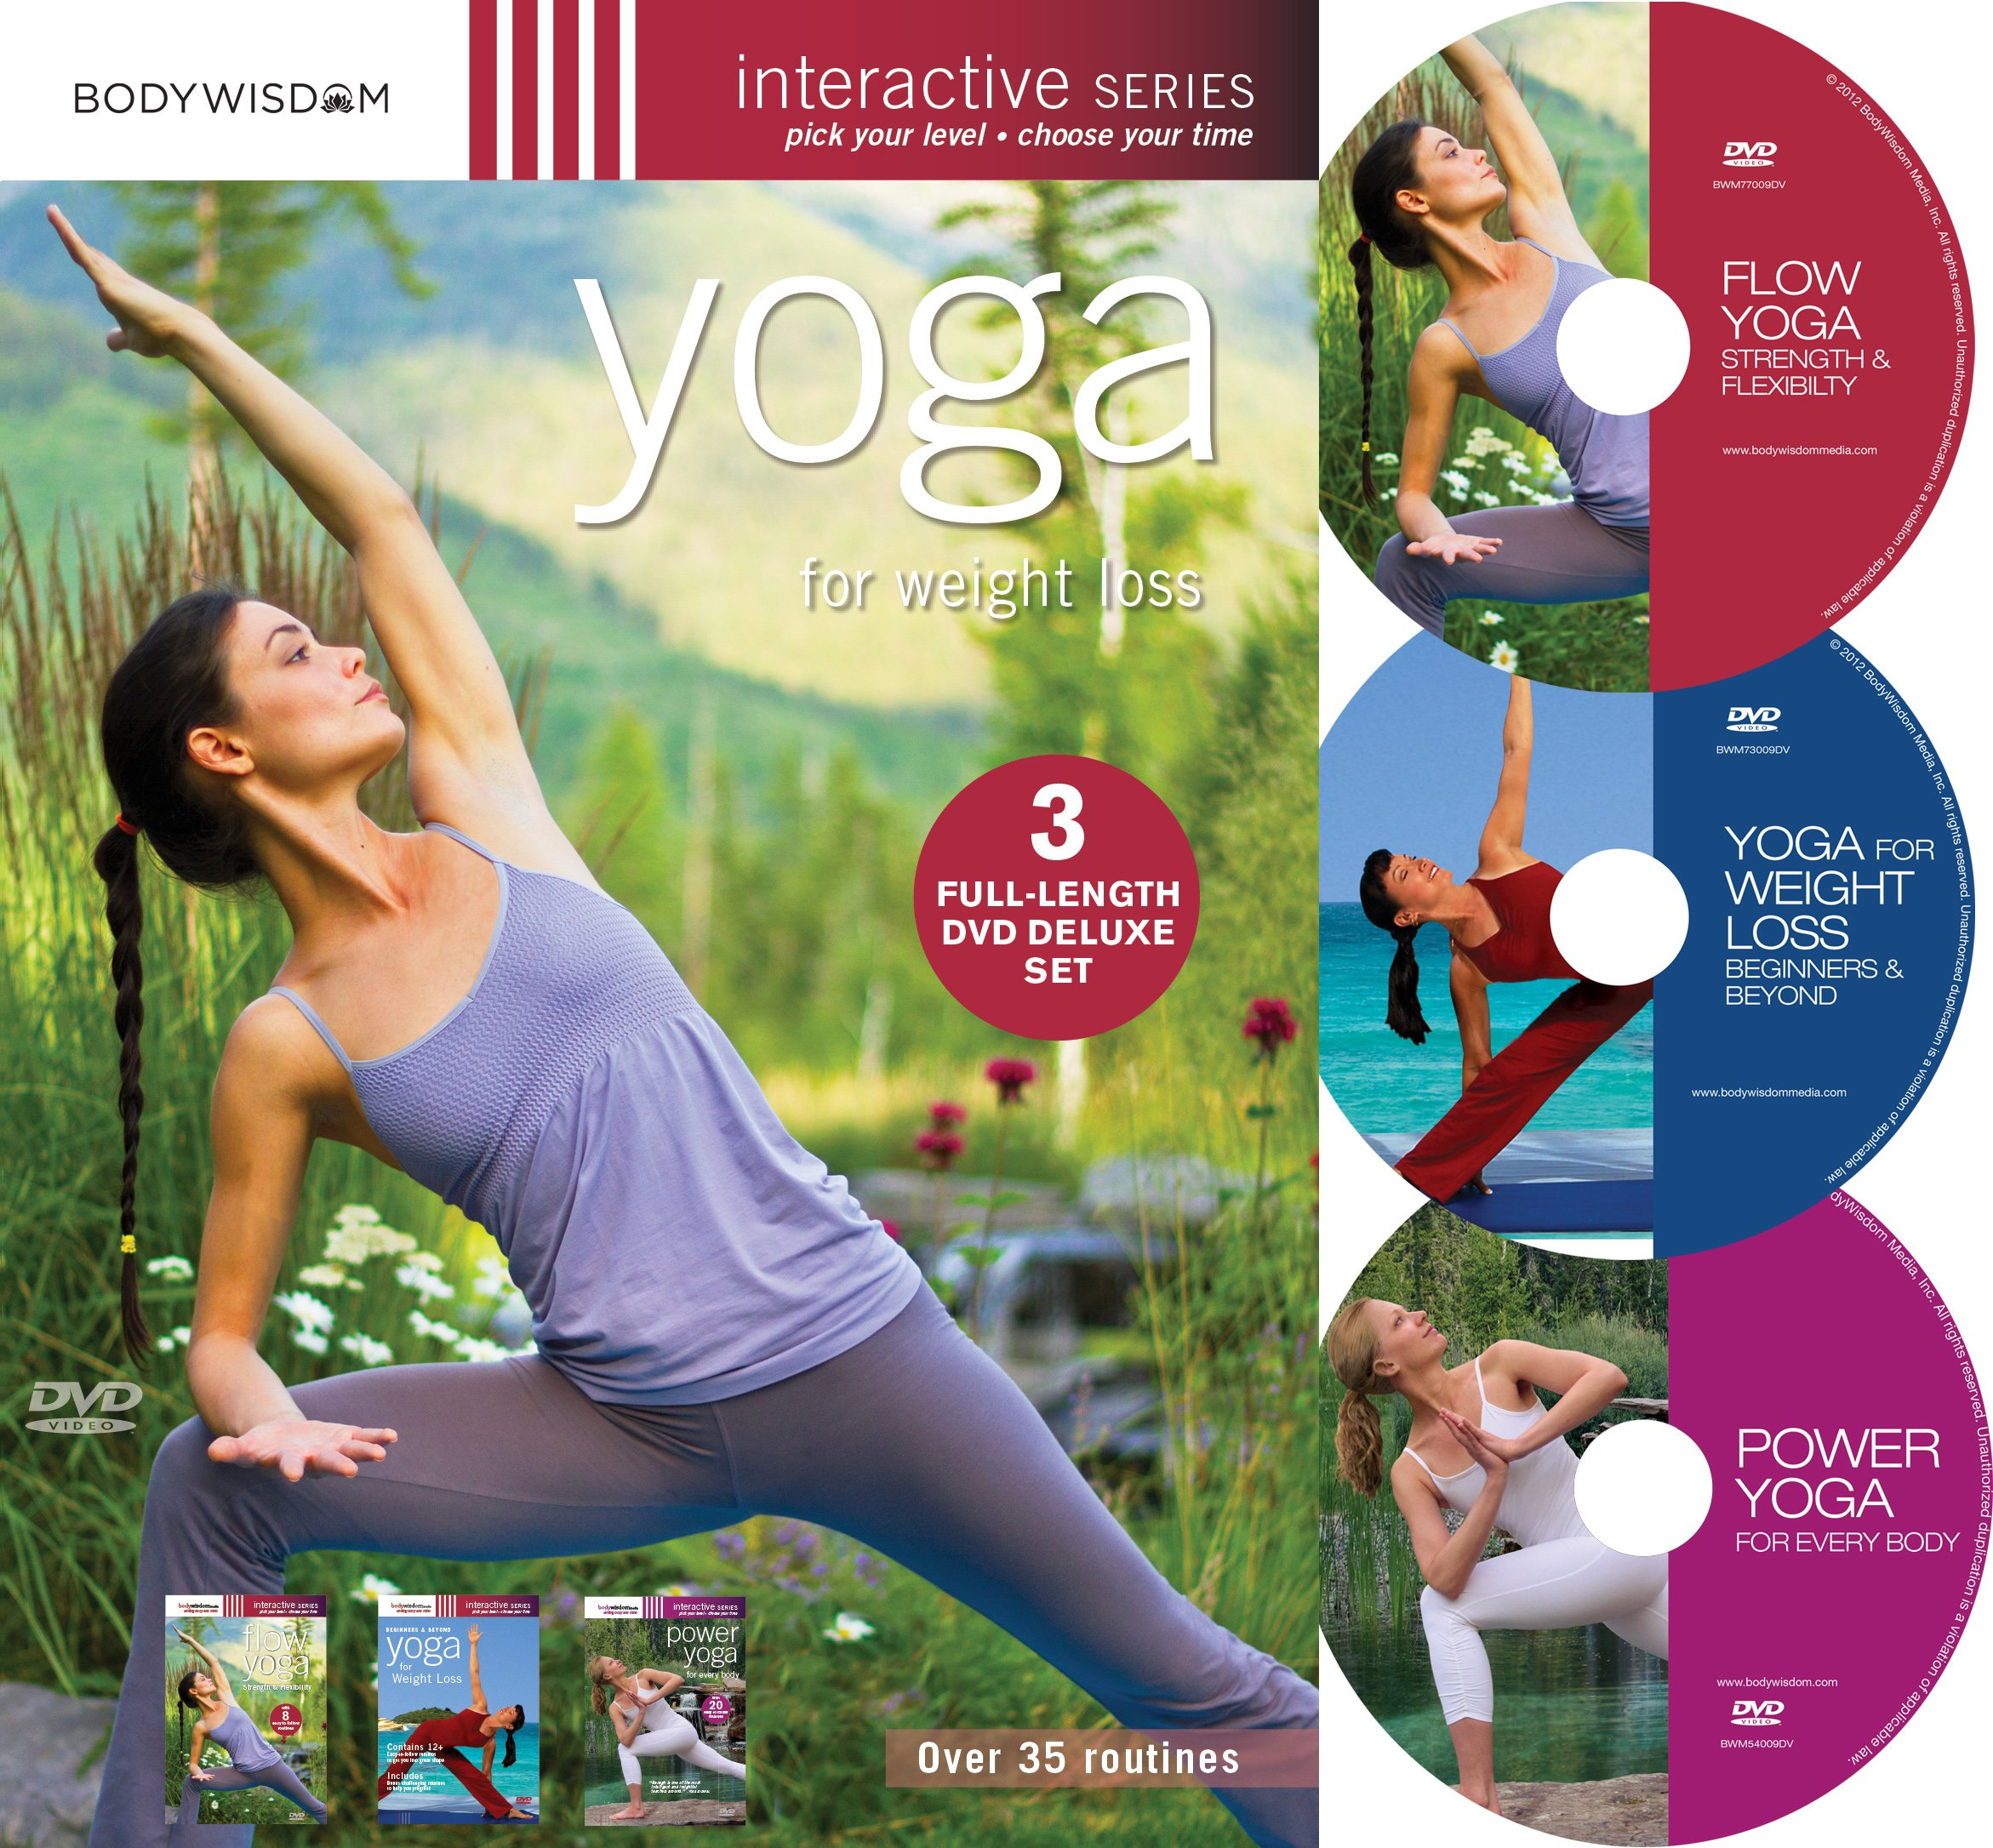 Health Shopping Yoga for Weight Loss (Deluxe 3 DVD set with over 35 routines)